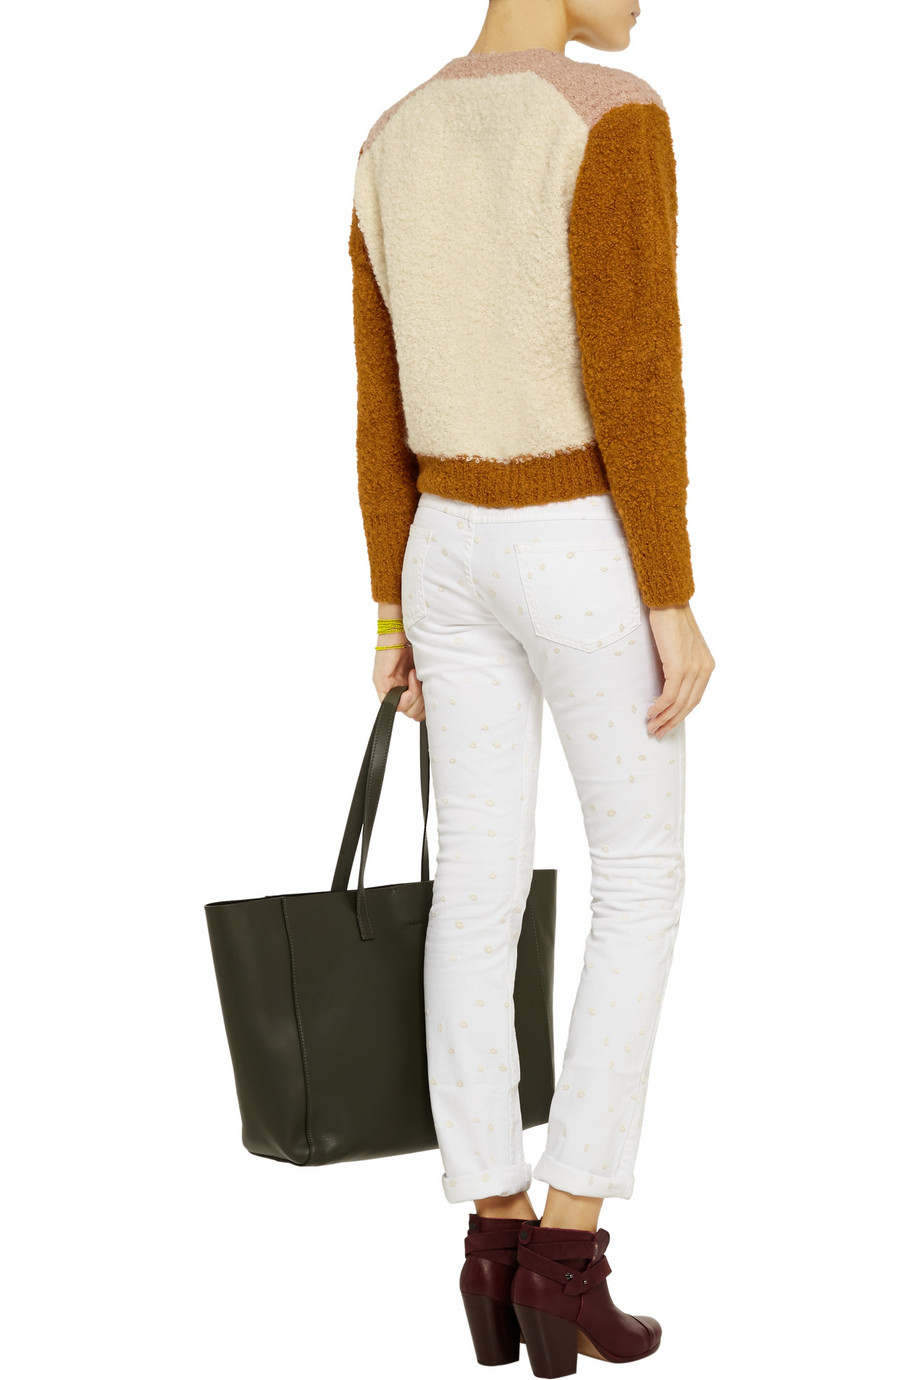 Étoile Isabel Marant Denim Rumba Embroidered Low-rise Skinny Jeans in White